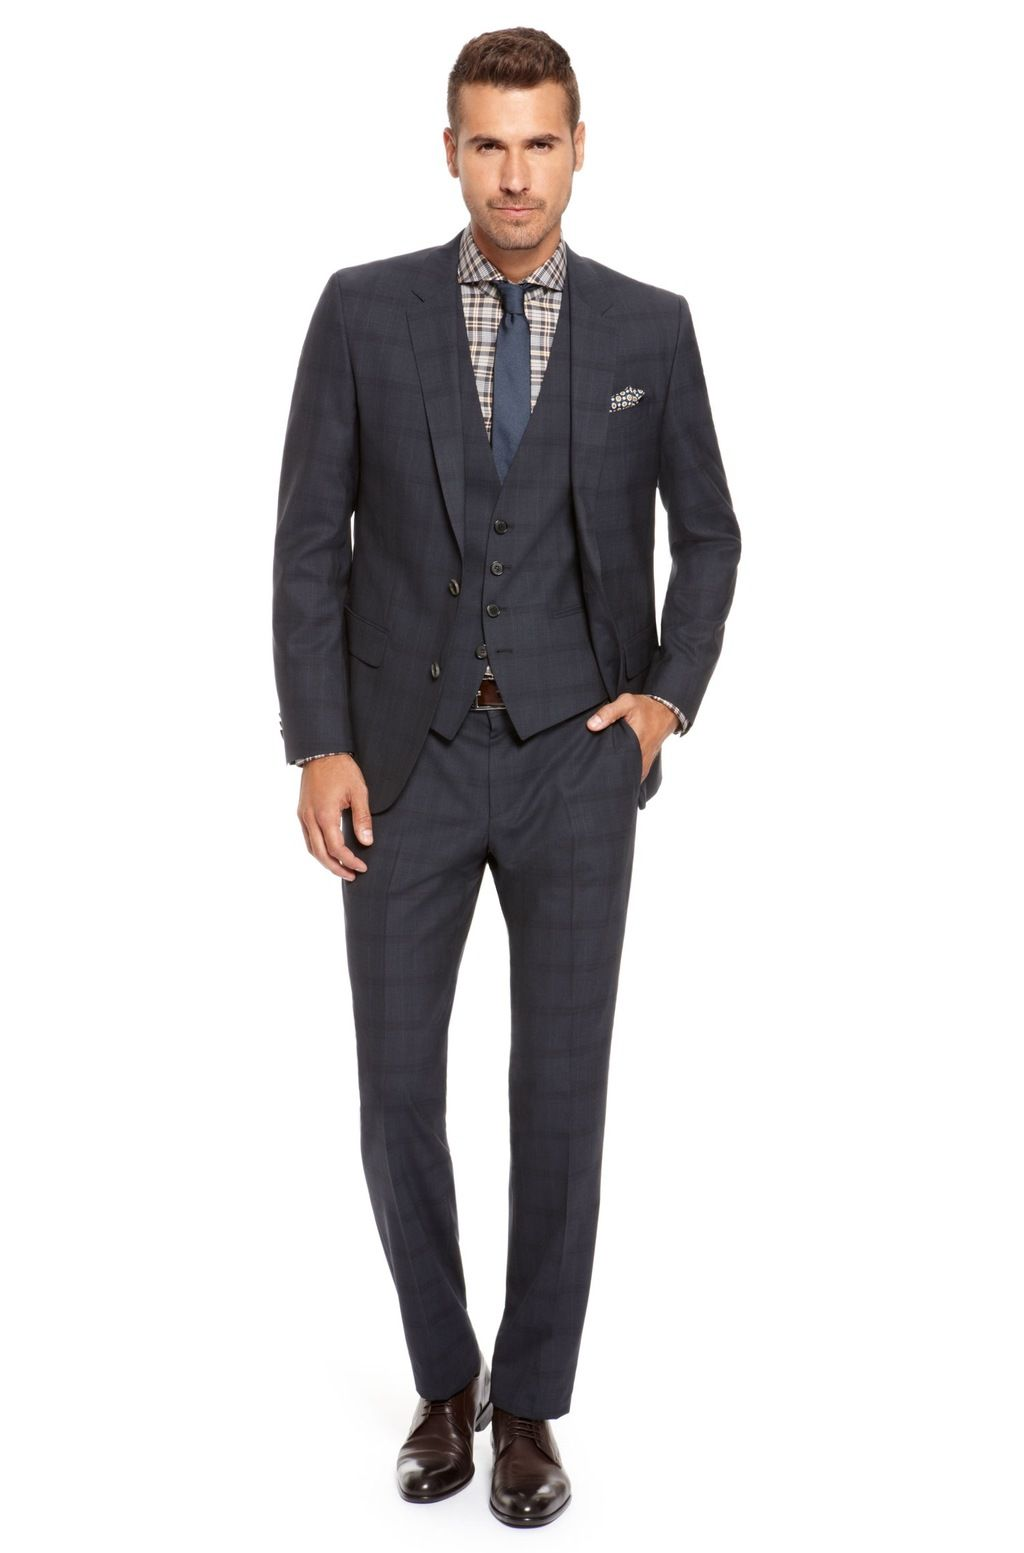 Shop men's suits, formalwear, jackets & coats, dress shirts and other HUGO  BOSS clothing and fashion accessories for men.